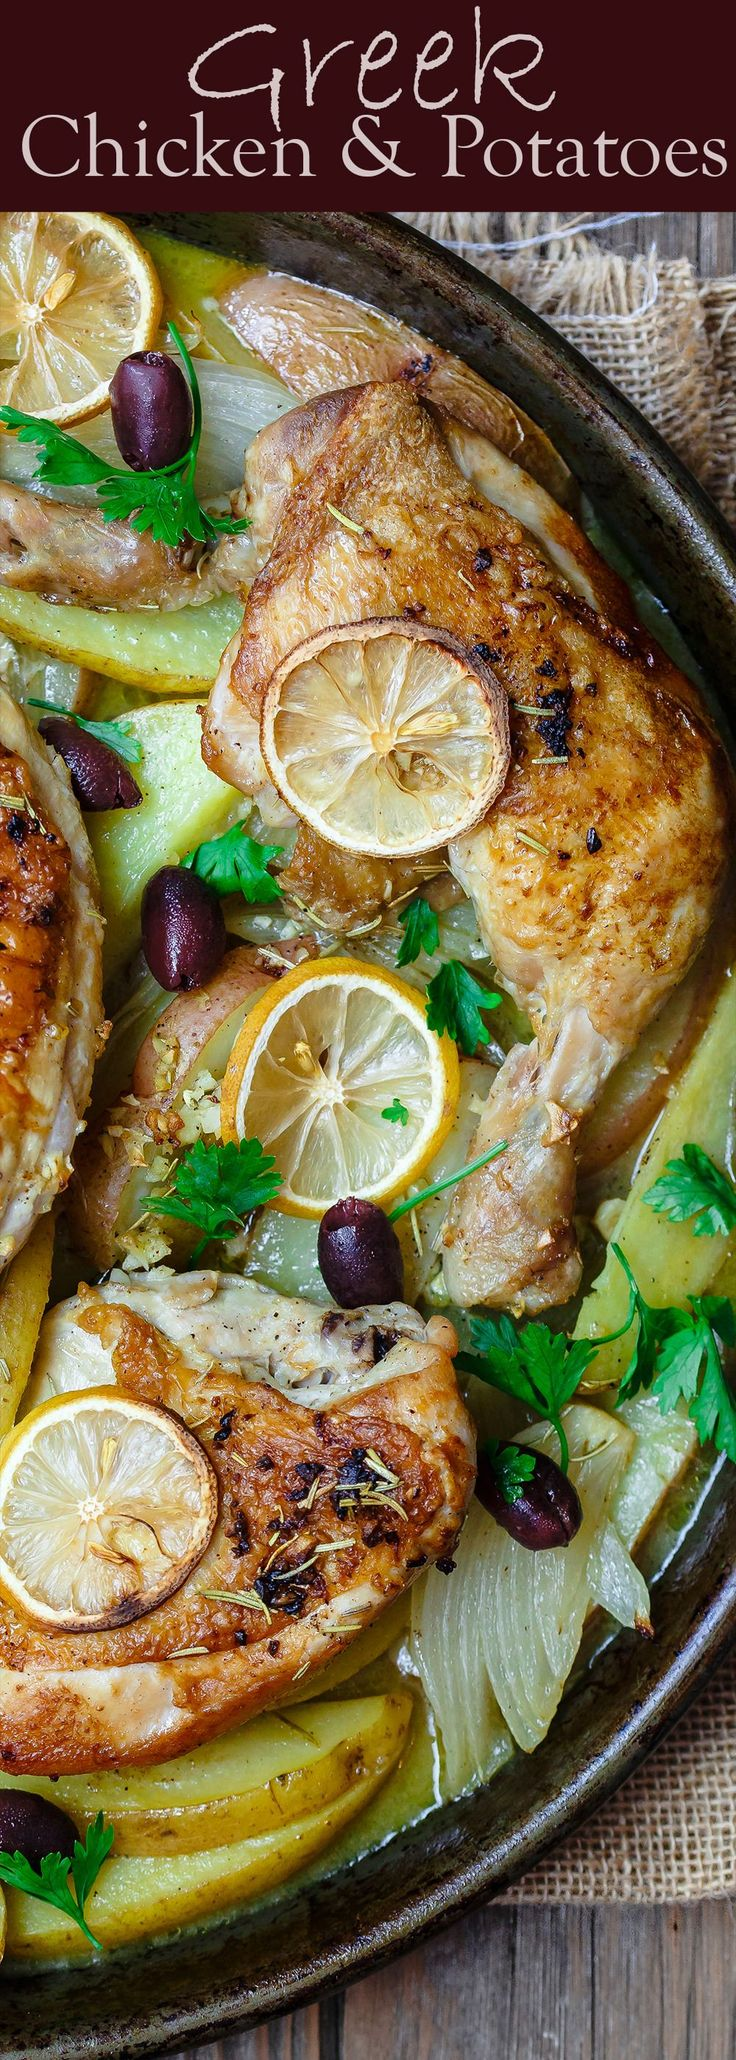 Easy Greek Chicken and Potato Dinner   The Mediterranean Dish. BEST Greek chicken and potato dinner all in one sheet pan! Seasoned with rosemary and baked in a zesty juice with lots of garlic. Definite Winner!